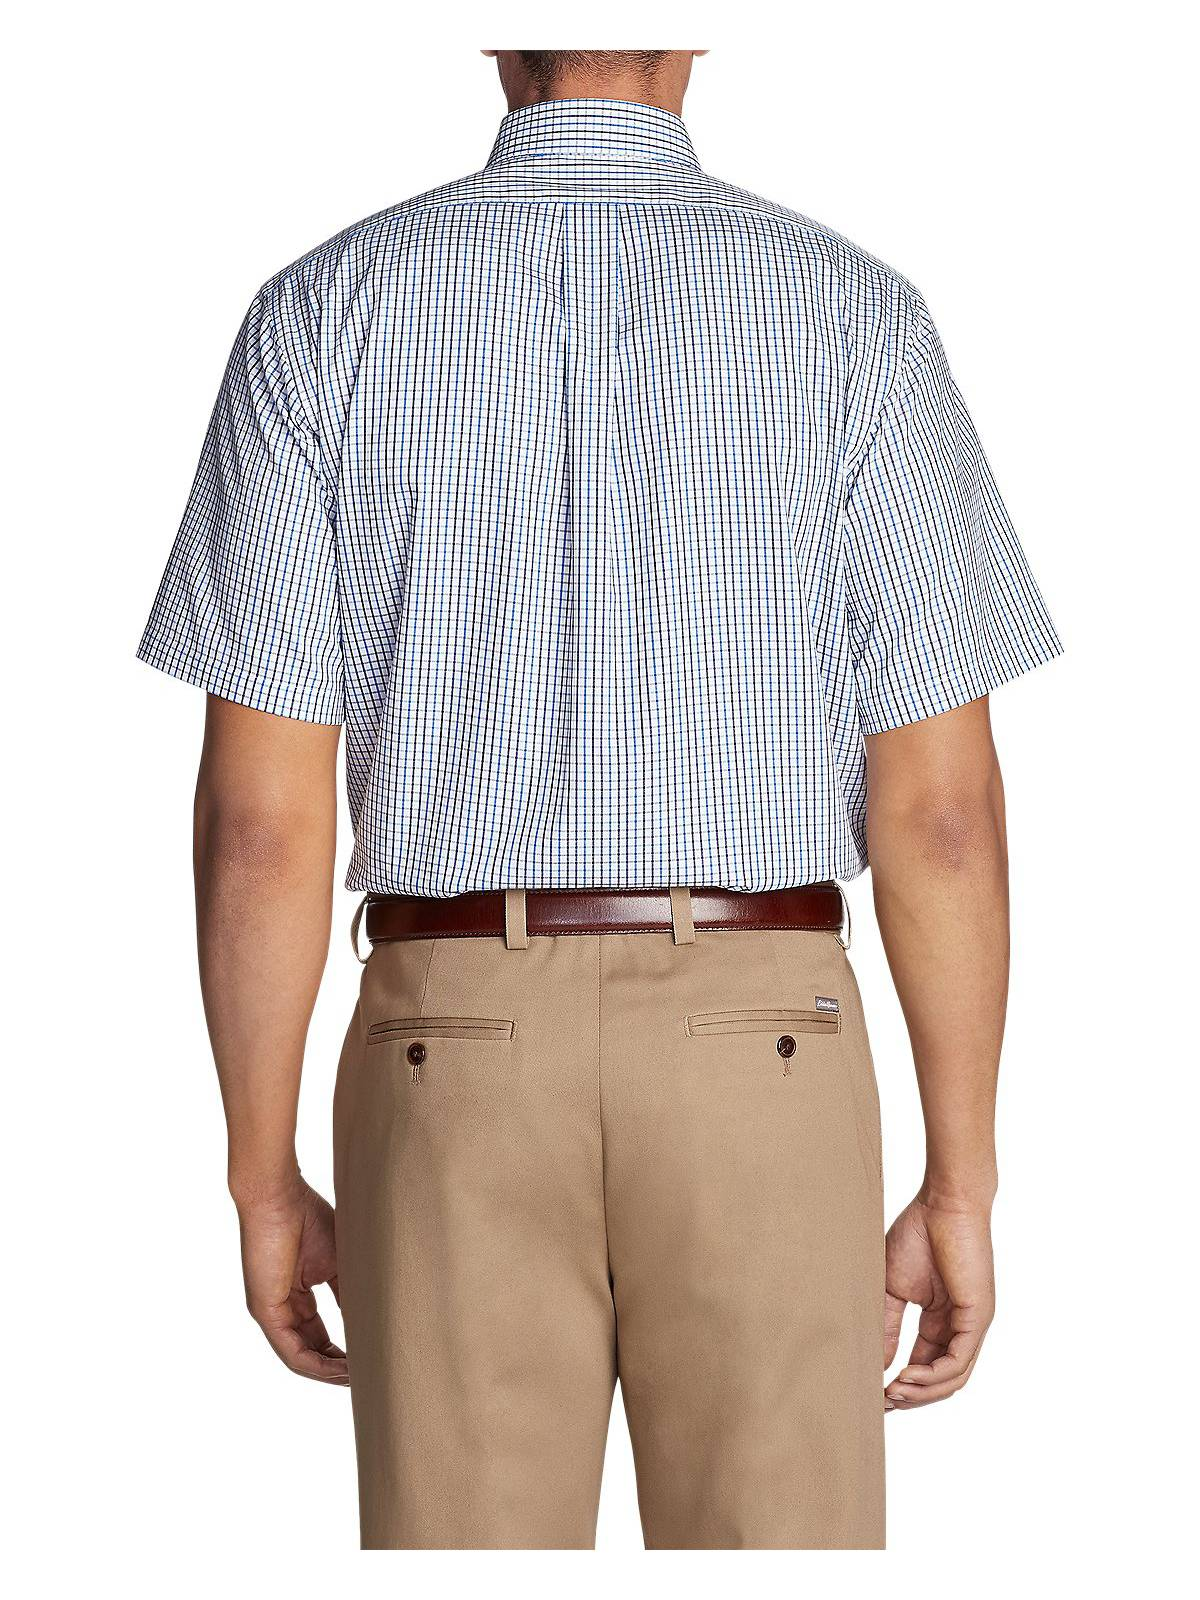 7e266fec08 Eddie Bauer Men s Wrinkle-Free Relaxed Fit Short-Sleeve Pinpoint ...